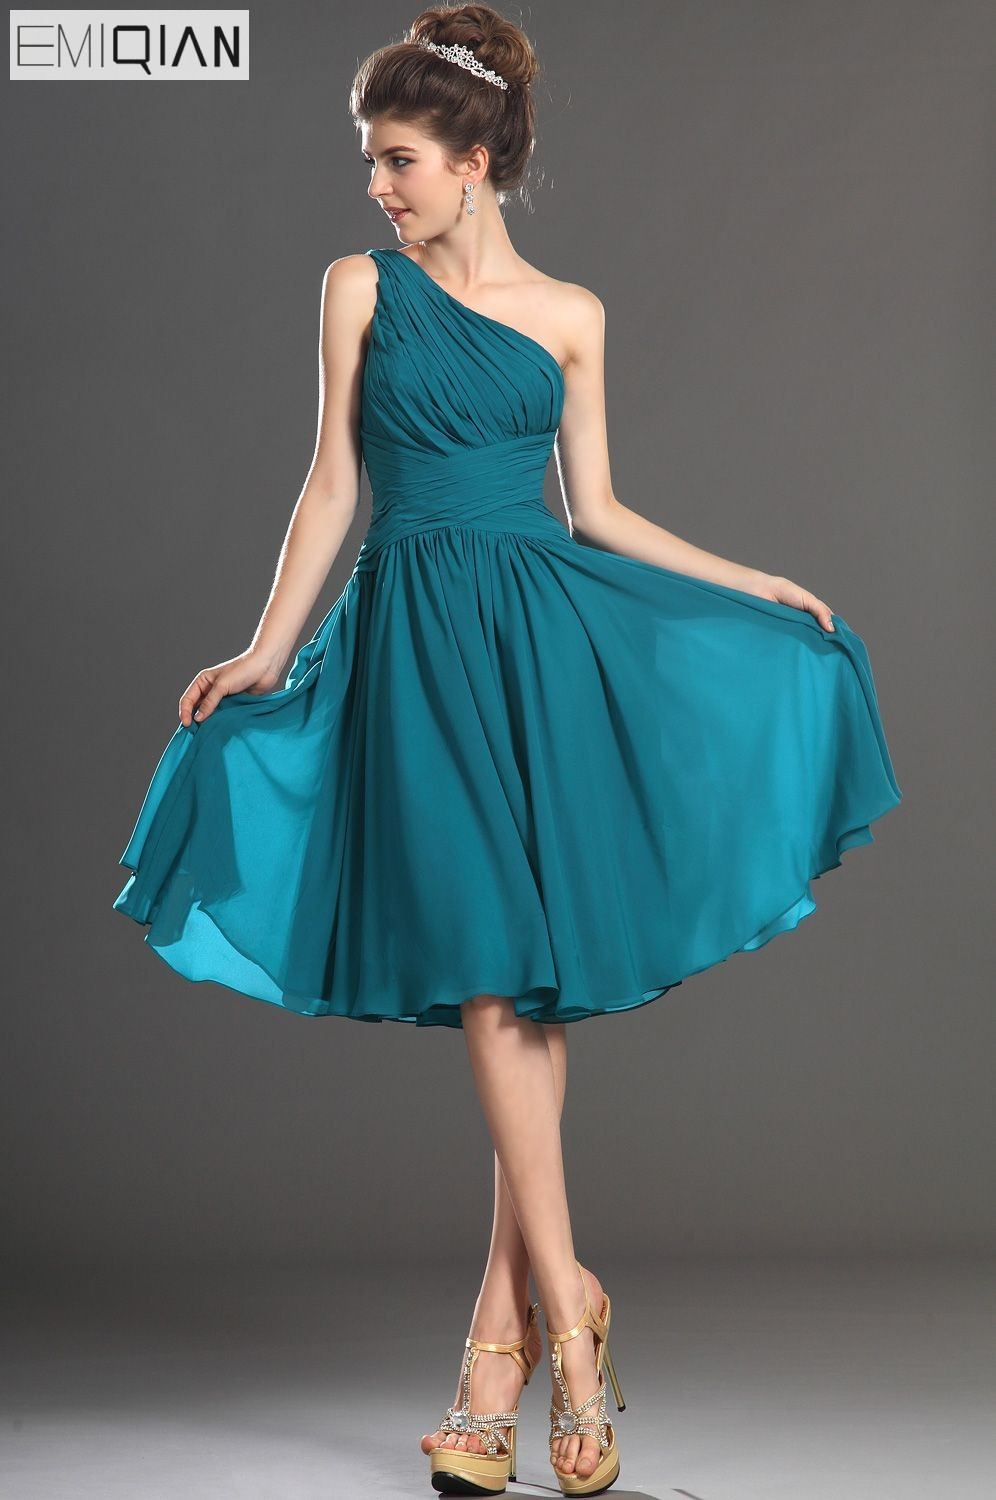 Free Shipping New Arrival One Shoulder A-Line Pleated Bodice Chiffon Cocktail Dress